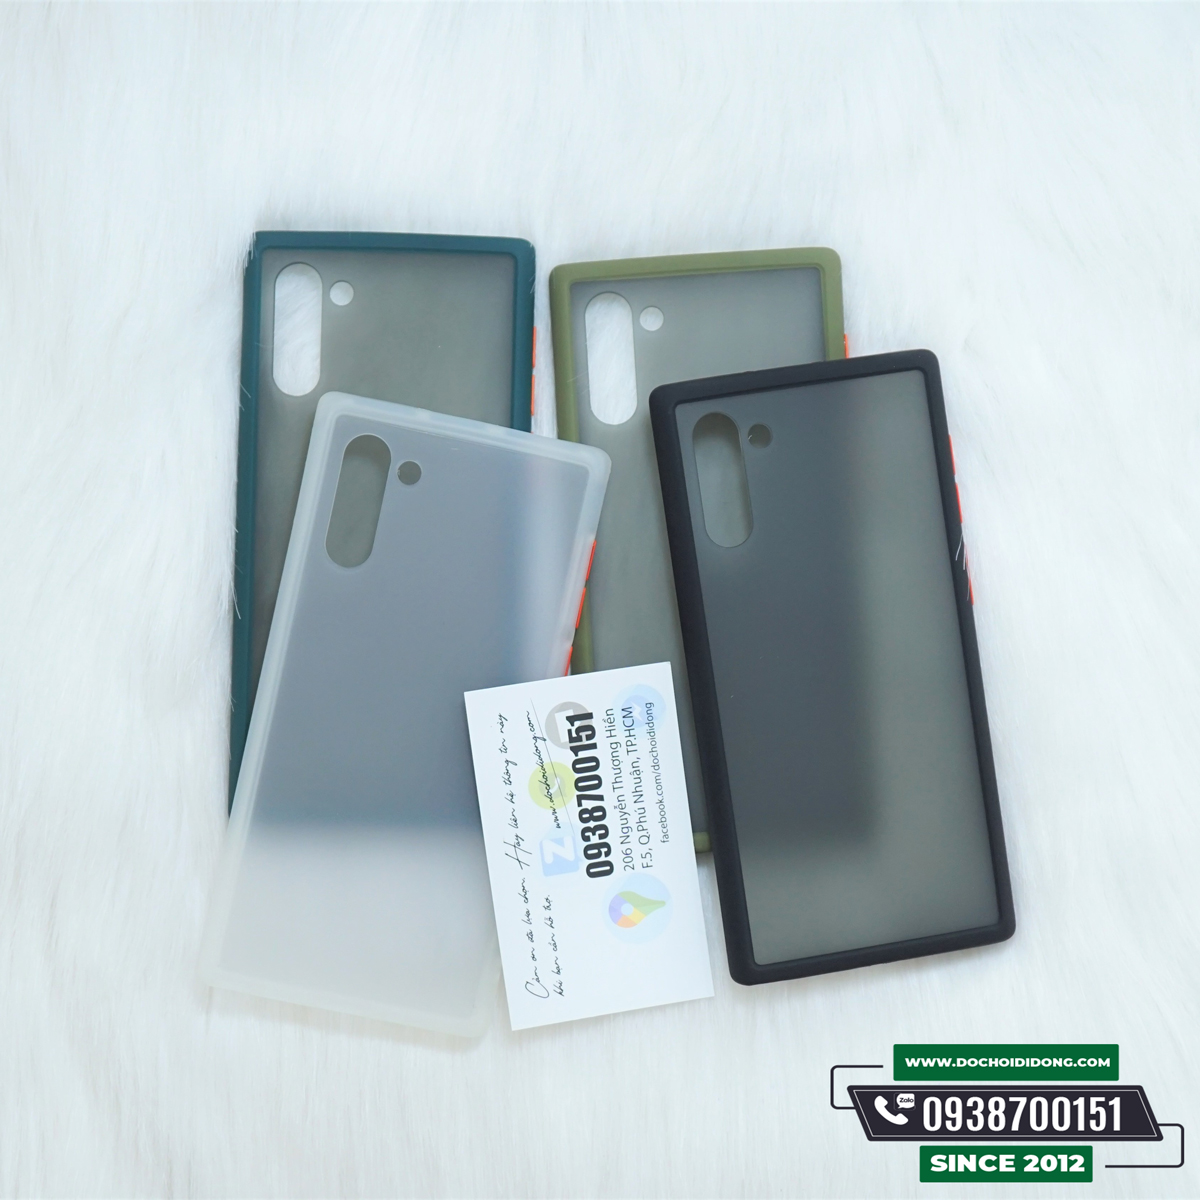 op-lung-samsung-note-10-note-10-plus-vien-mau-lung-nham-trong-chong-soc